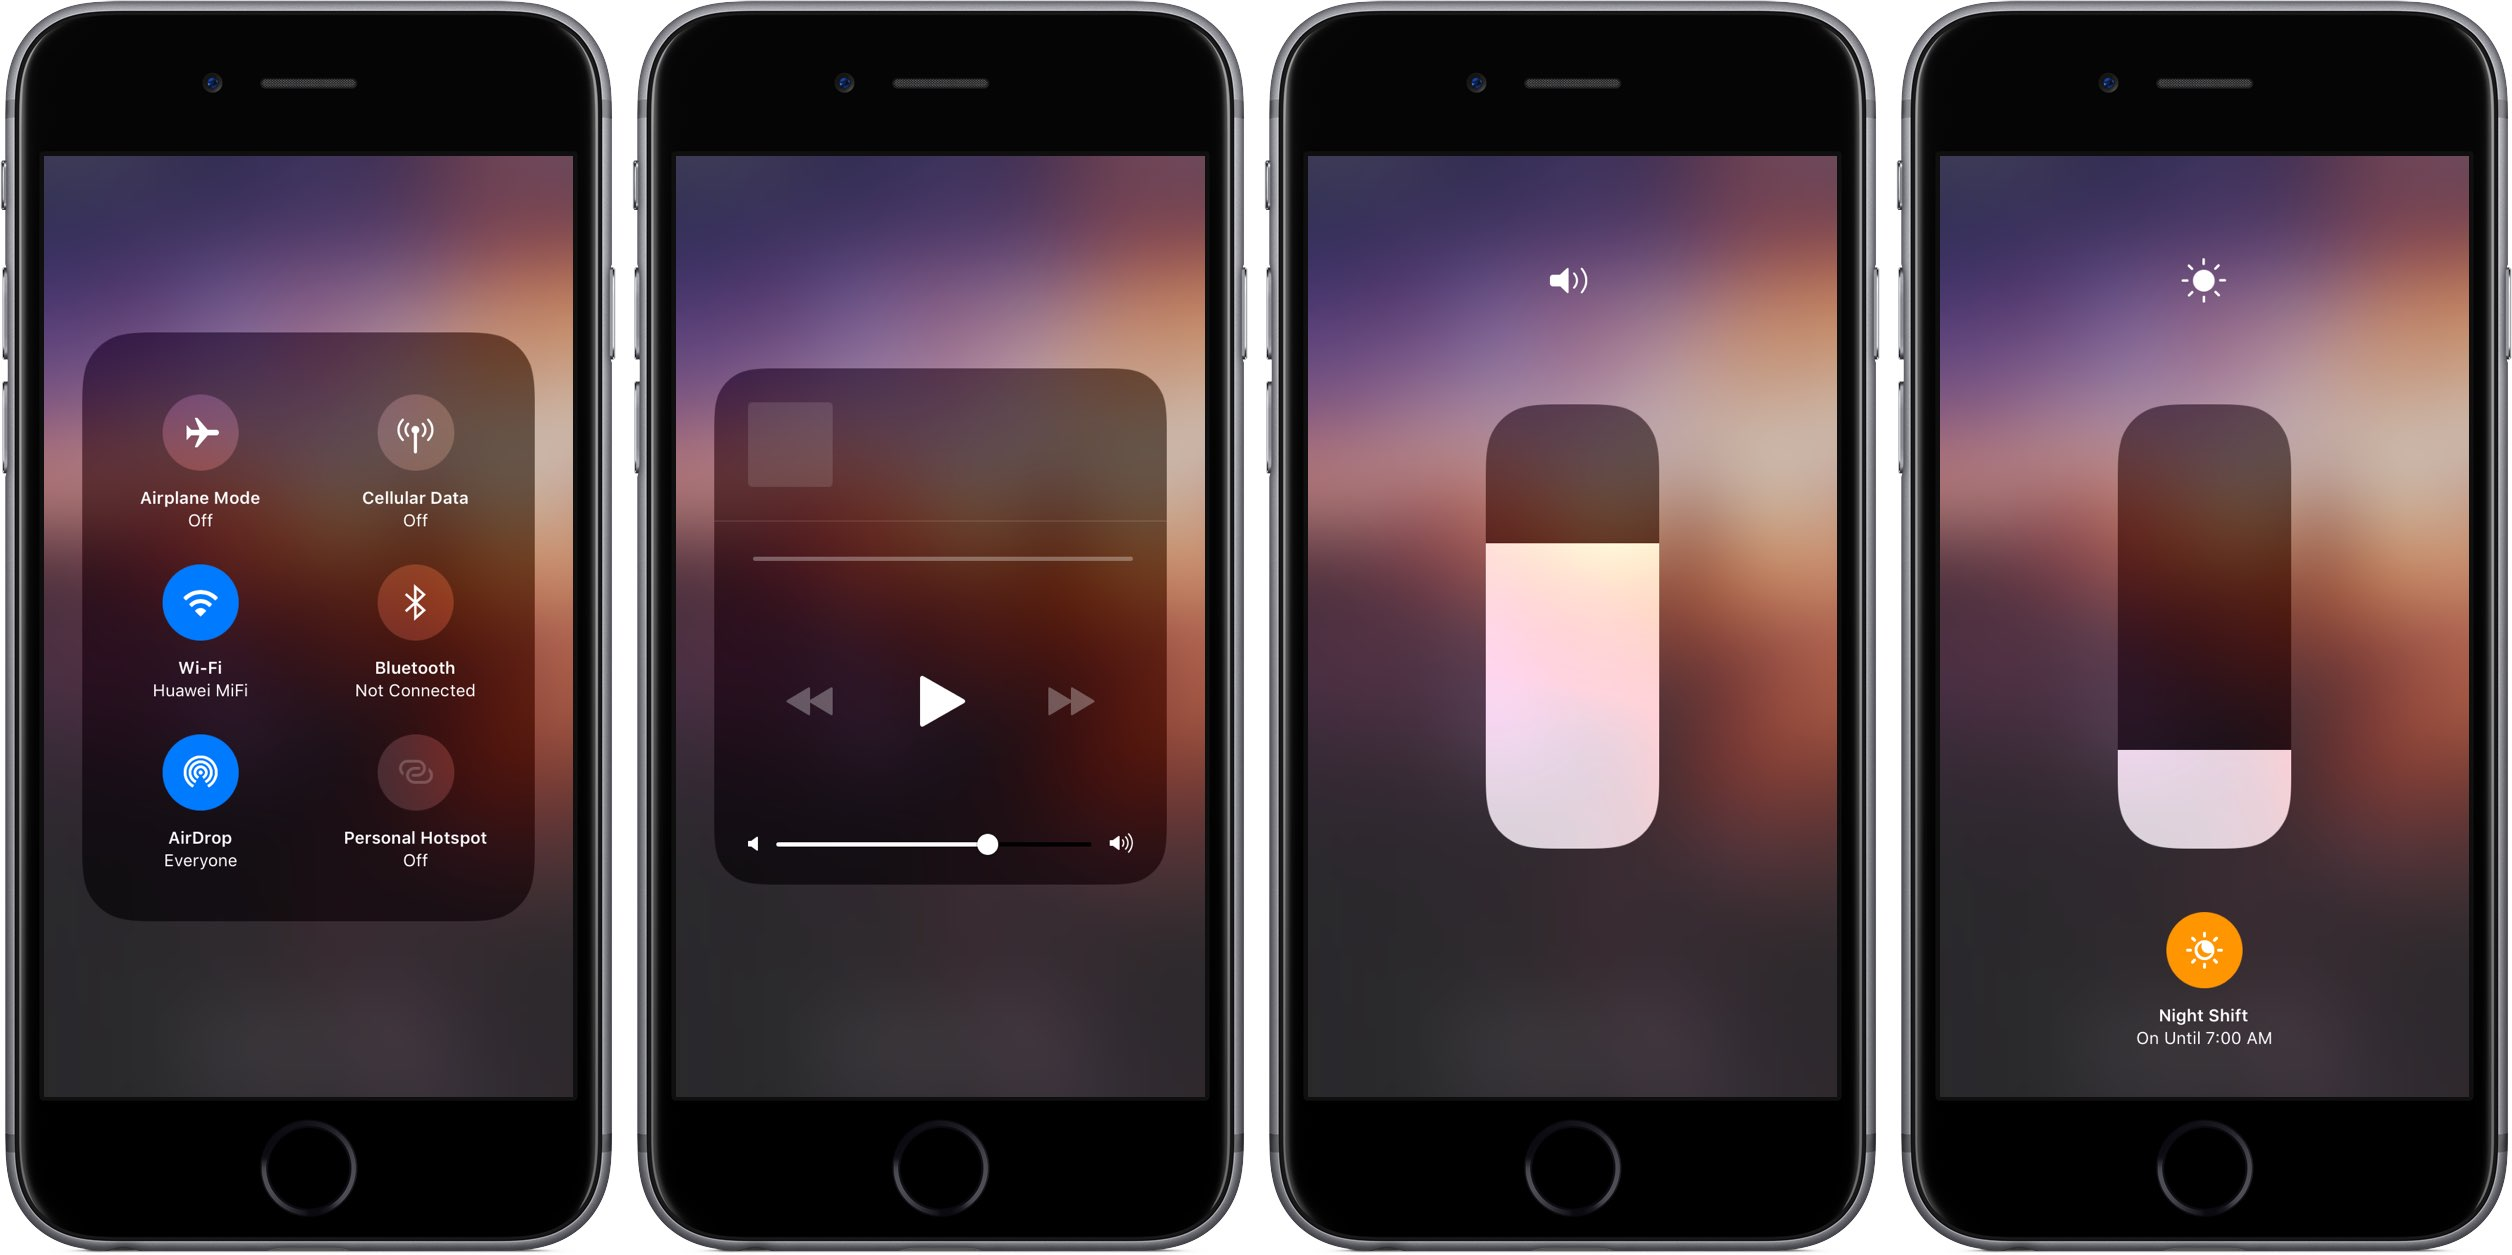 Hands-on with iOS 11's highly customizable Control Center